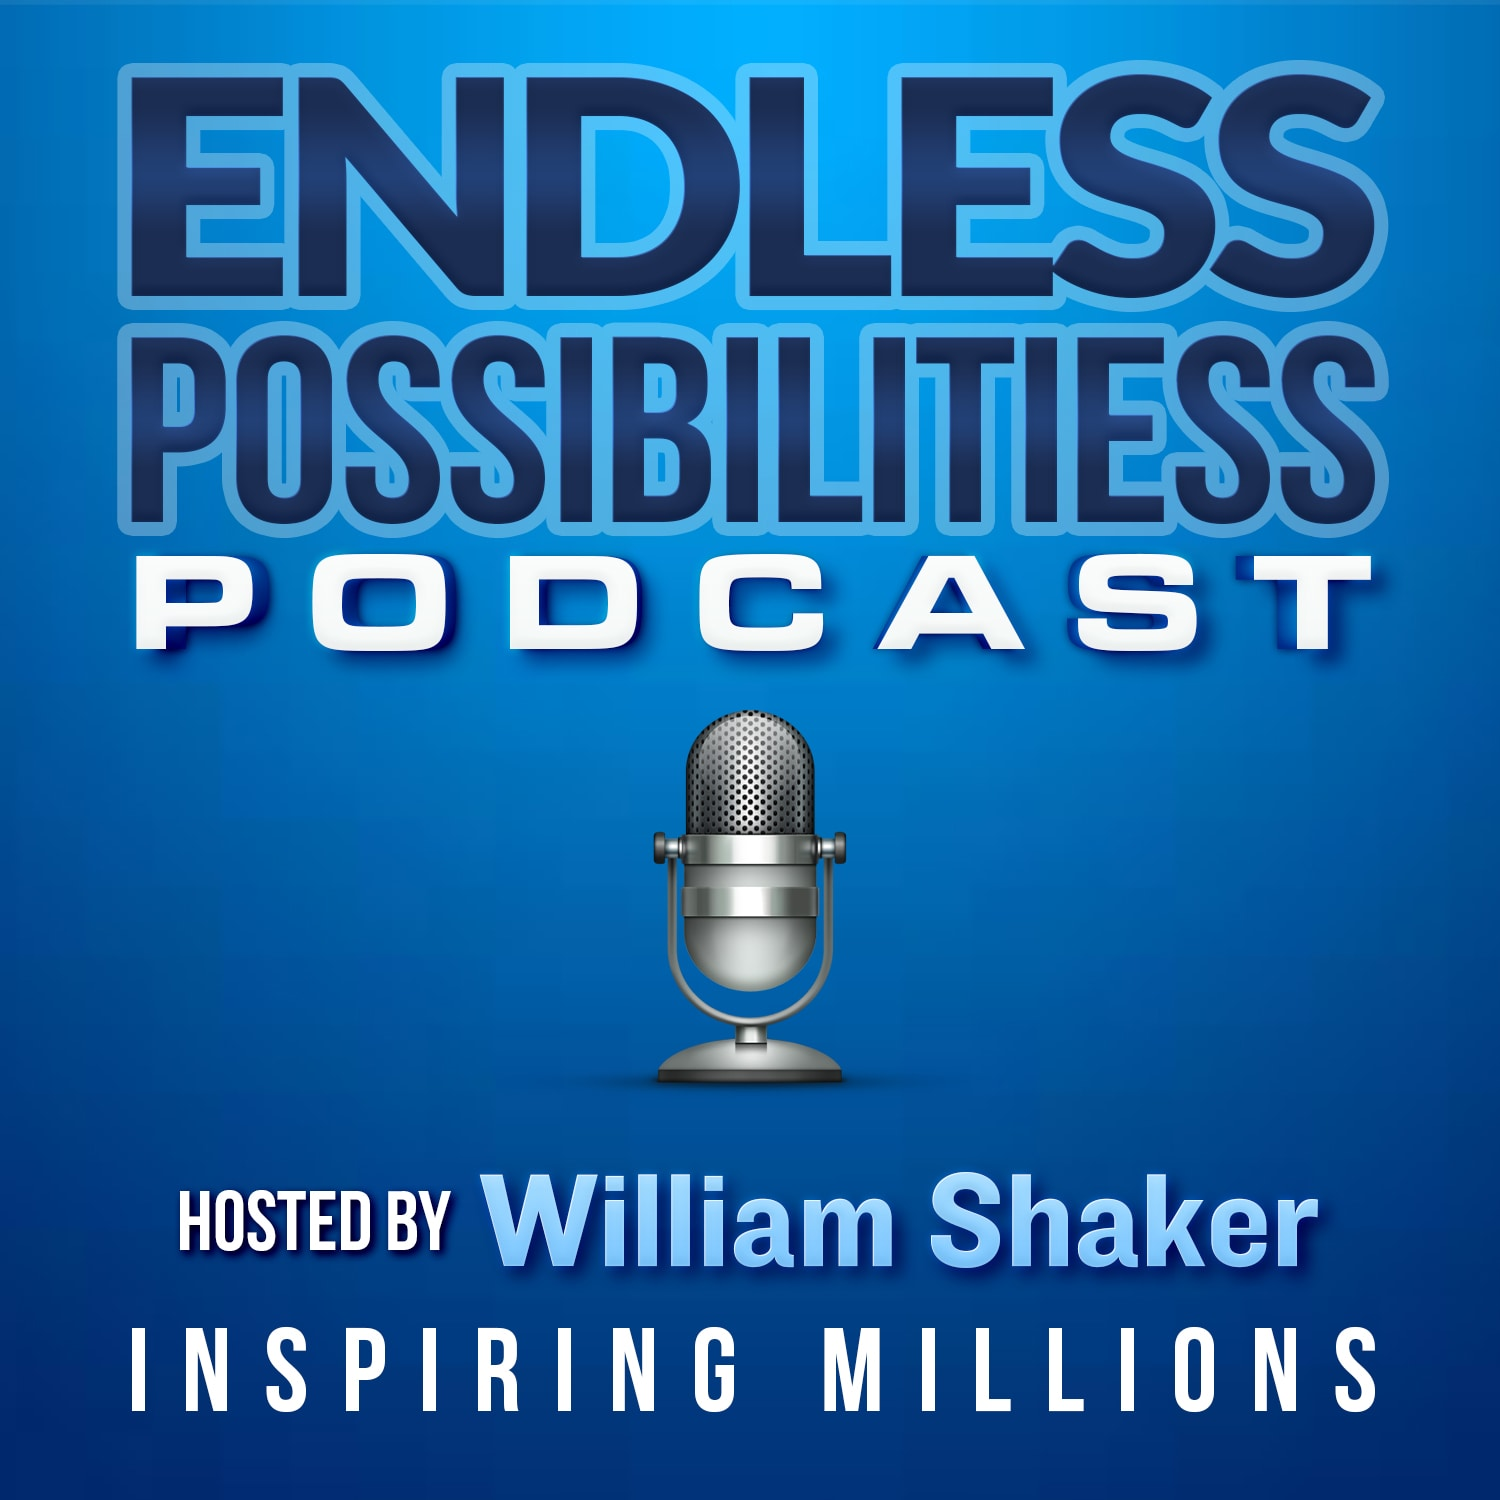 Endless Possibilities Podcast